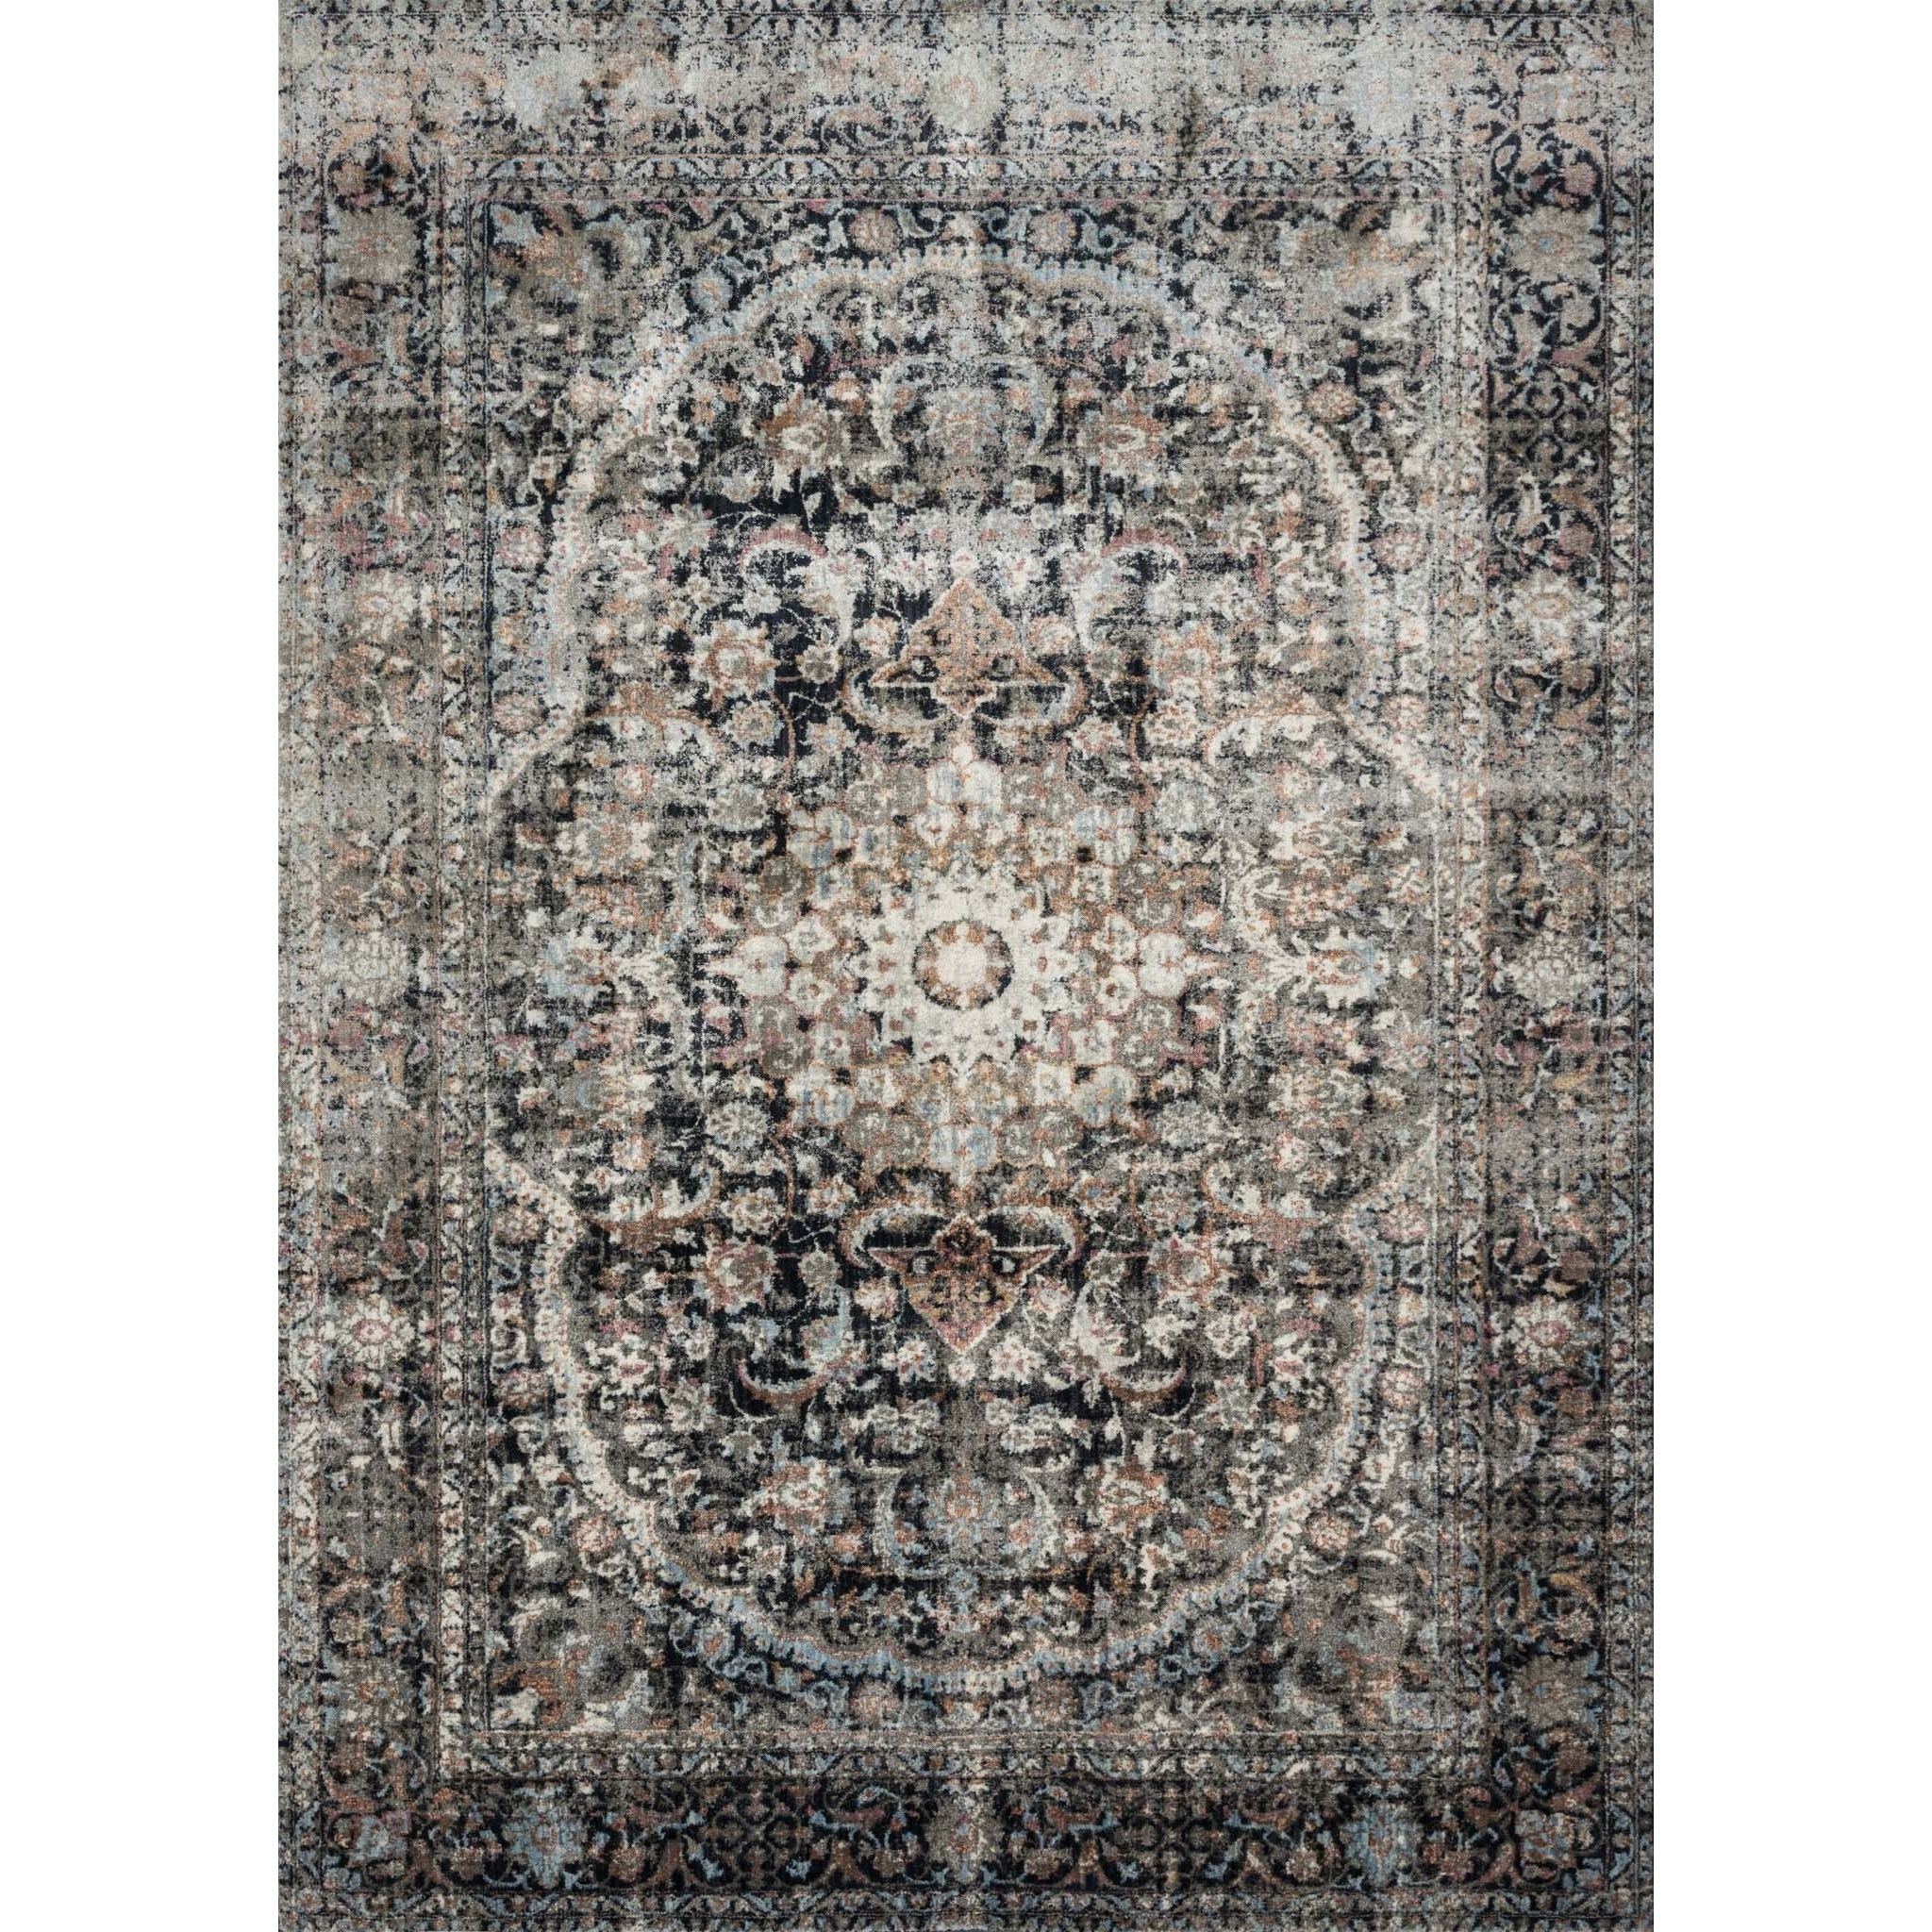 "Anastasia 9'-6"" x 13' Rug by Loloi Rugs at Virginia Furniture Market"